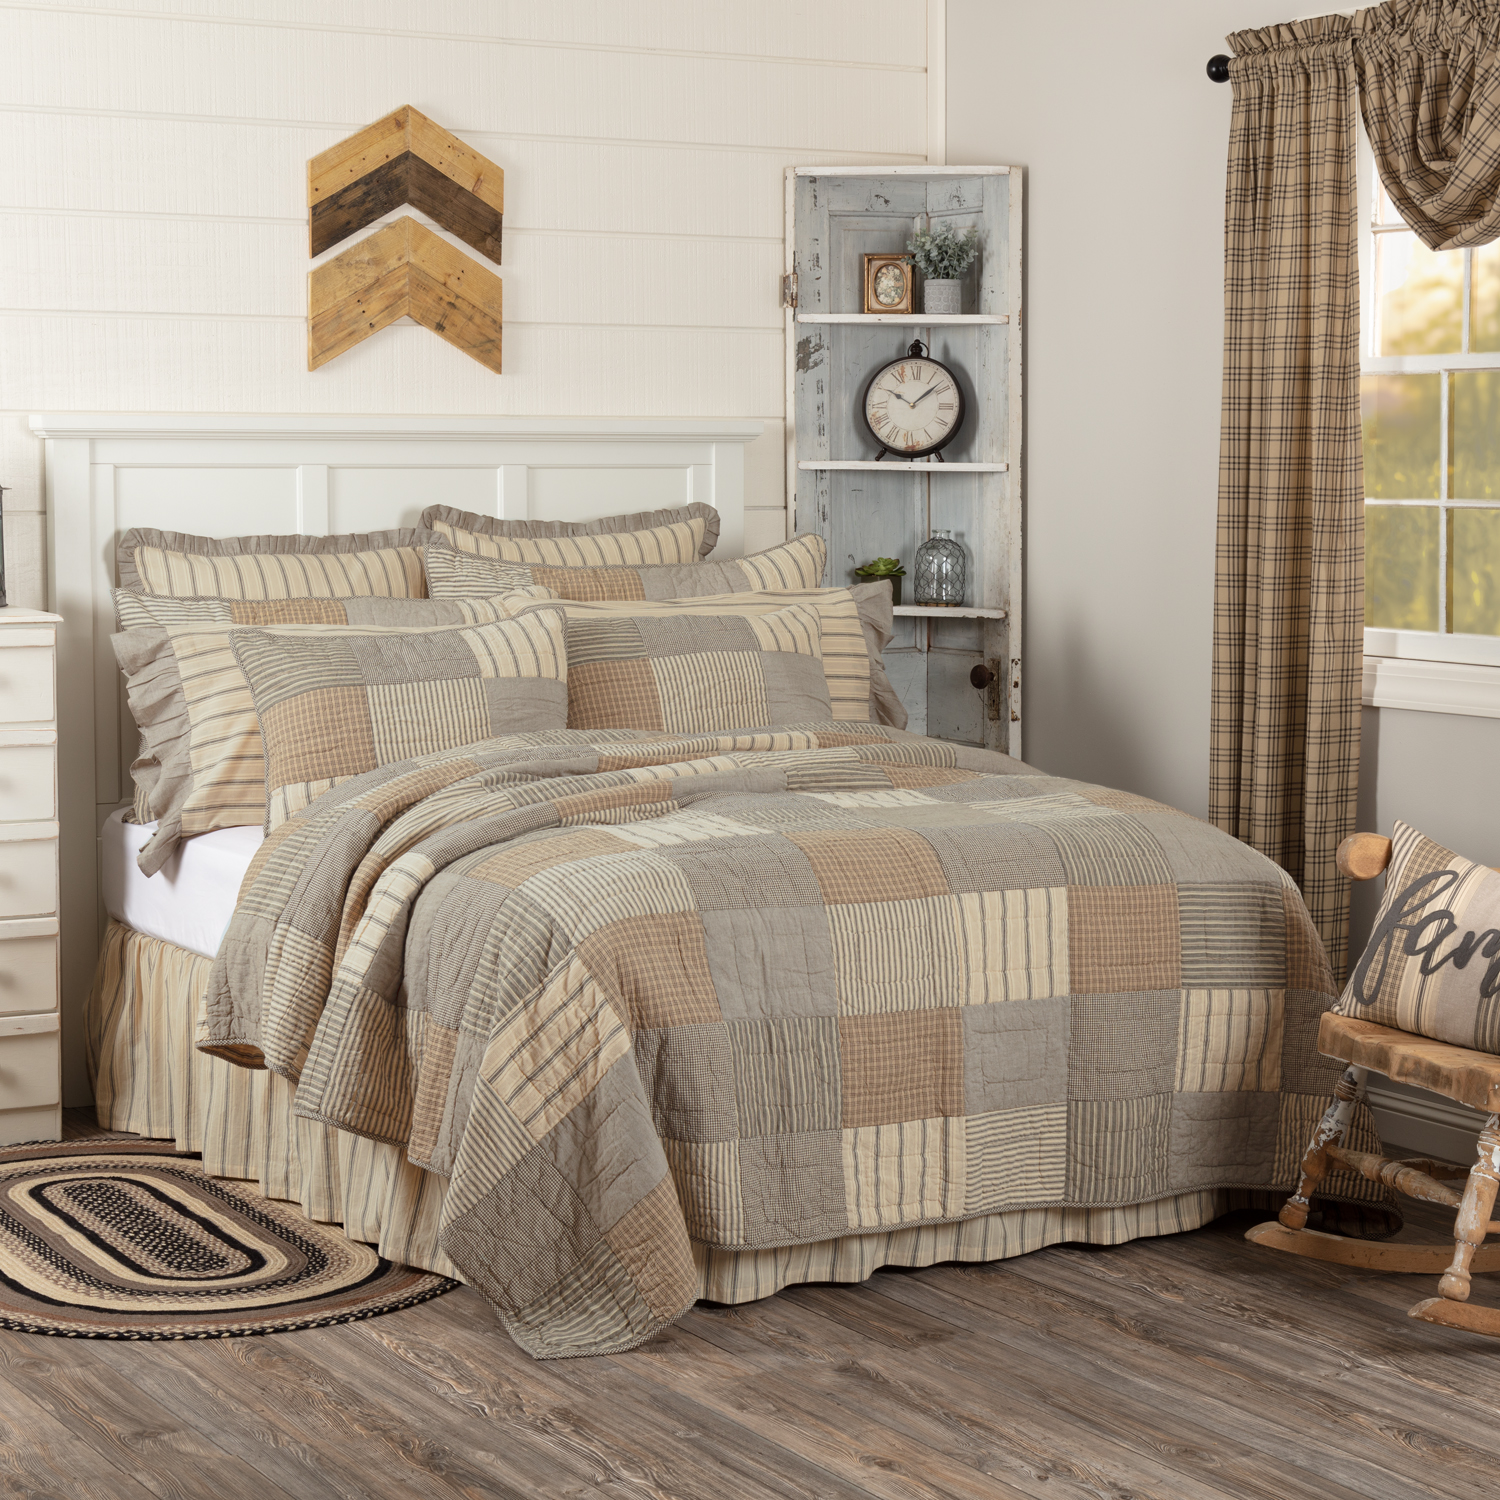 Charcoal Grey Farmhouse Bedding Miller Farm Charcoal